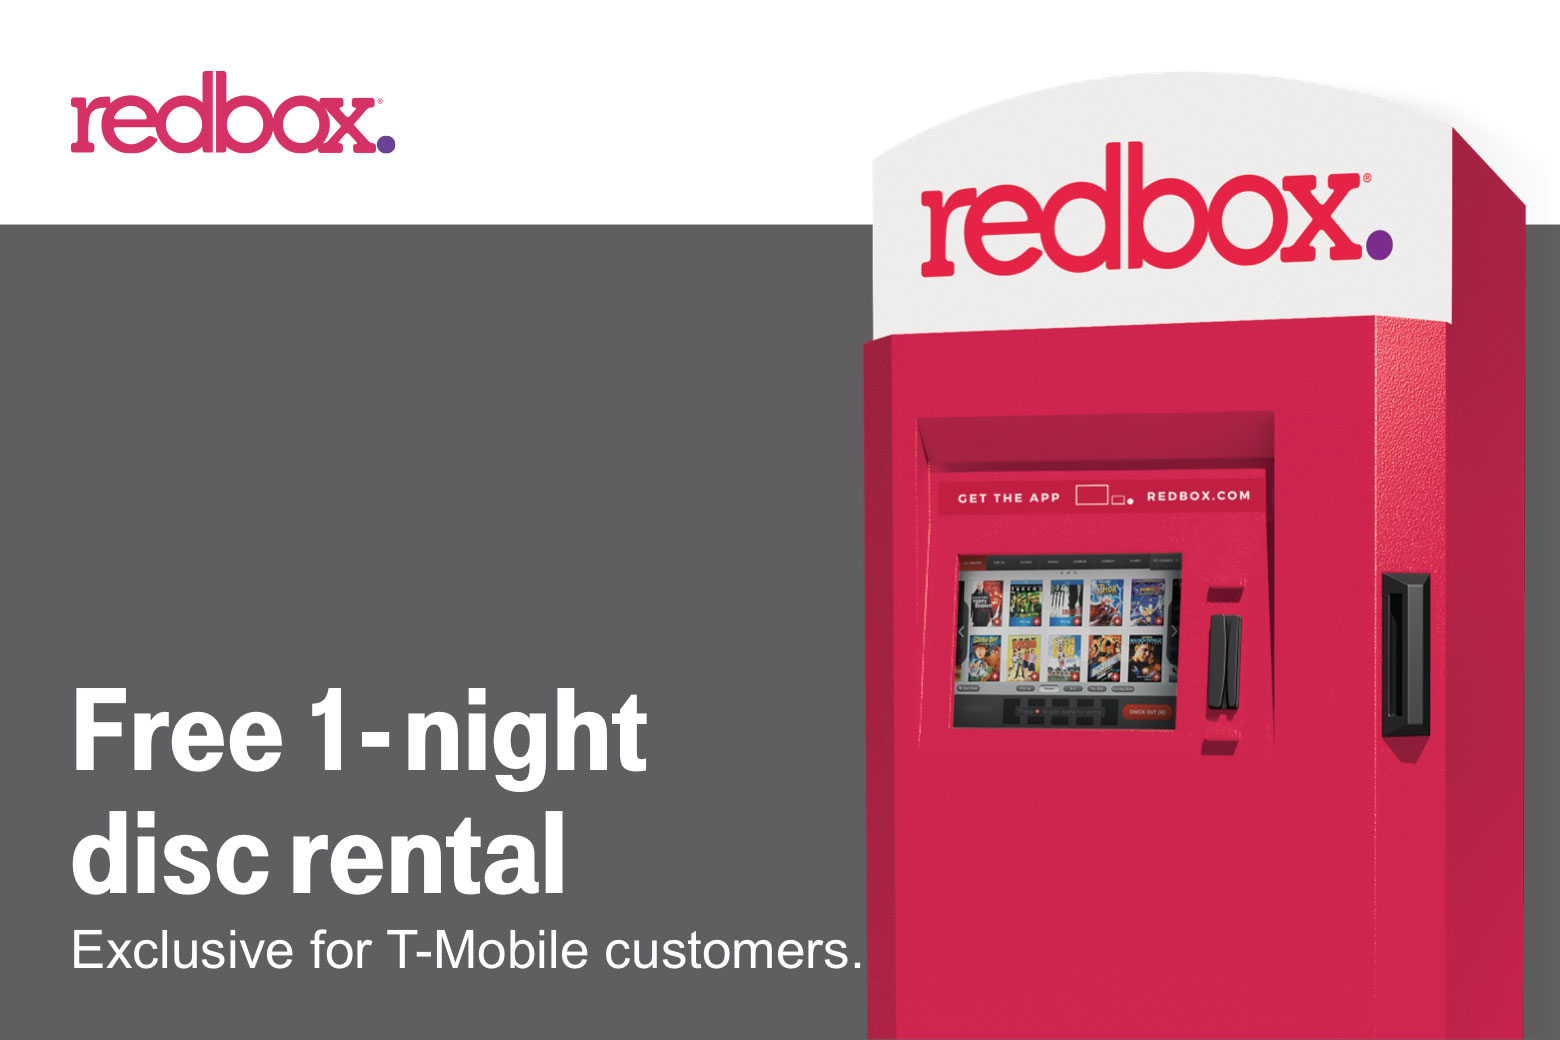 Redbox. Free 1-night disc rental. Exclusive for T-Mobile customers.